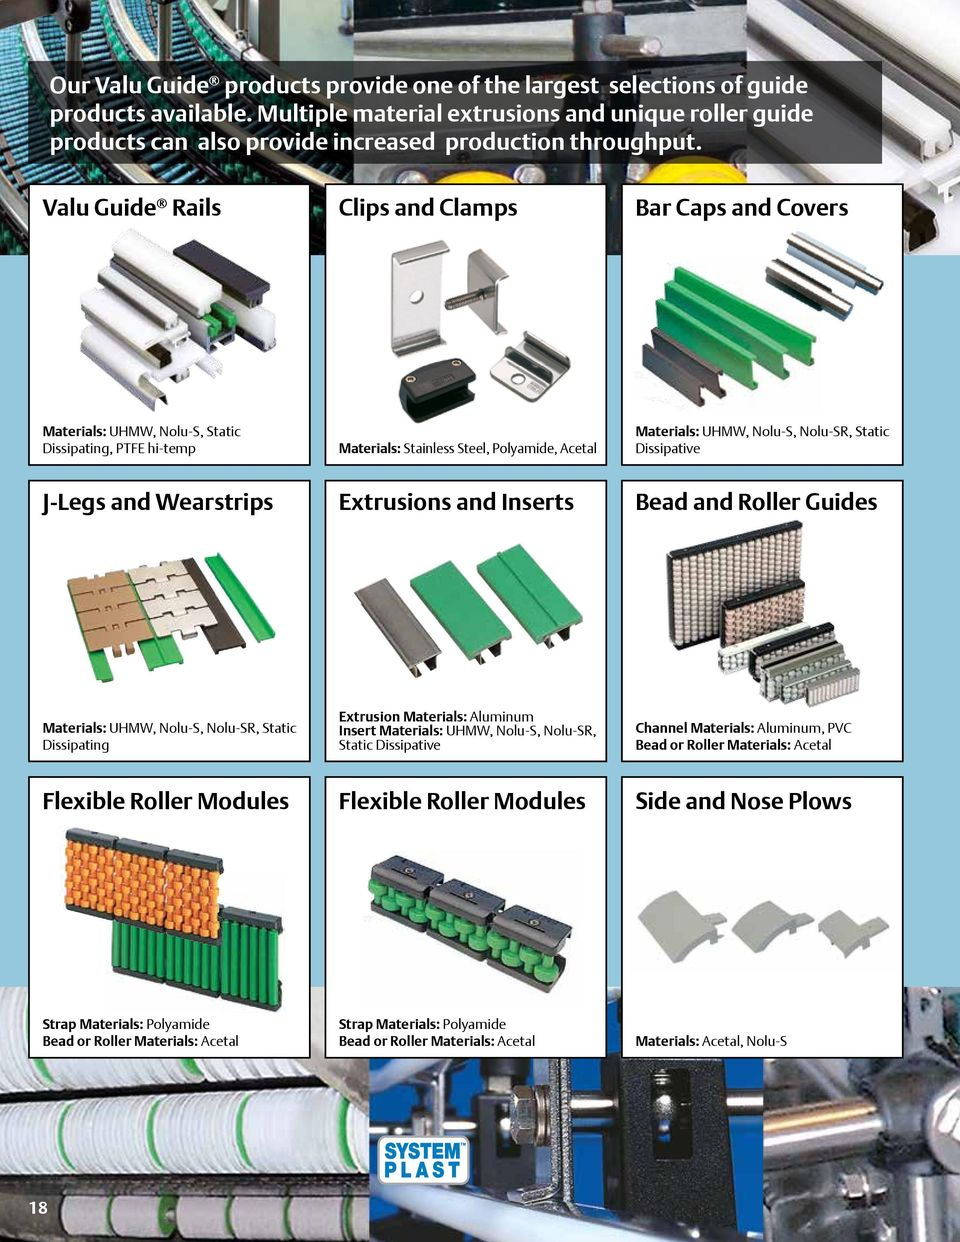 Valu Guide Rails Clips and Clamps Bar Caps and Covers Materials: UHMW, Nolu-S, Static Dissipating, PTFE hi-temp Materials: Stainless Steel, Polyamide, Acetal Materials: UHMW, Nolu-S, Nolu-SR, Static